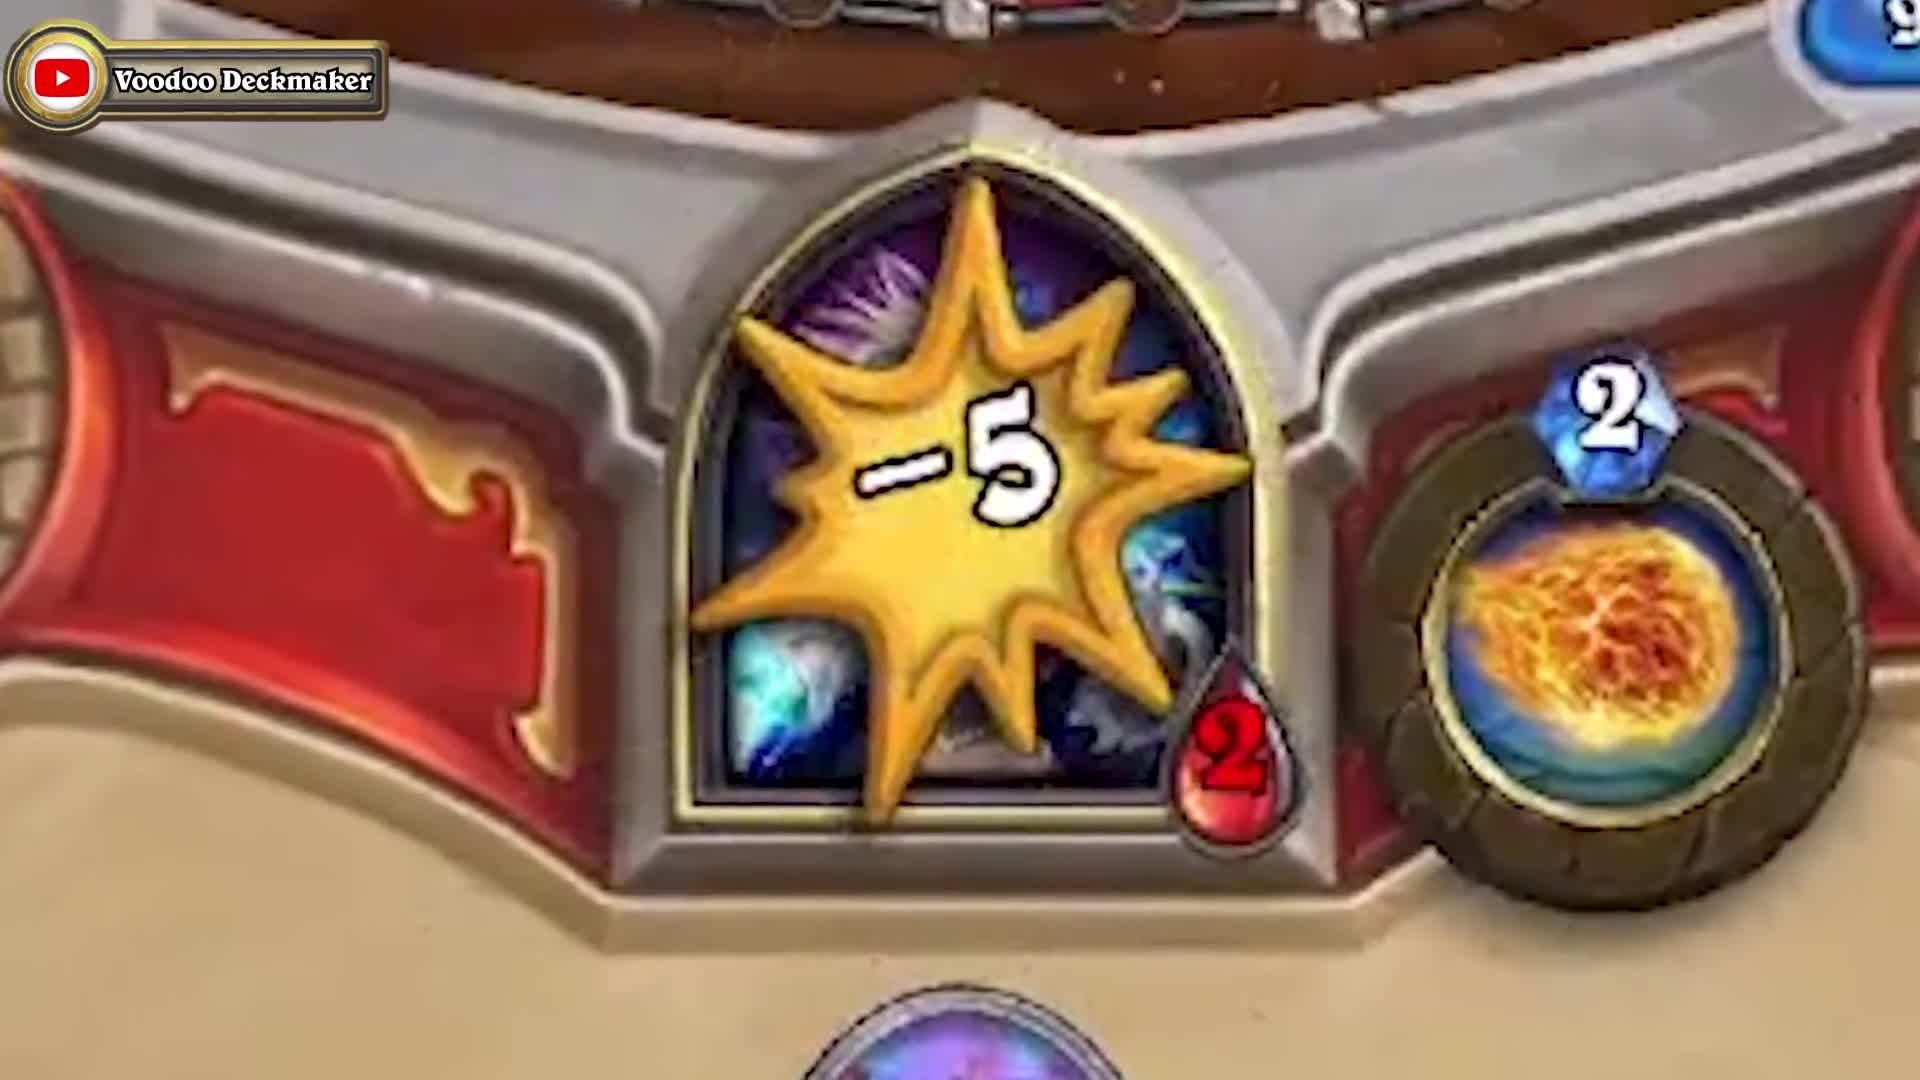 Hearthstone, epic, fail, funny, hearth, hearthtrolden, heroes, heroes of warcraft, how, journey, kripp, kripparian, lucky, moments, to, trolden, trumpsc, tutorial, ungoro, warcraft, Funny And Lucky Moments - Hearthstone - Ep. 443 GIFs